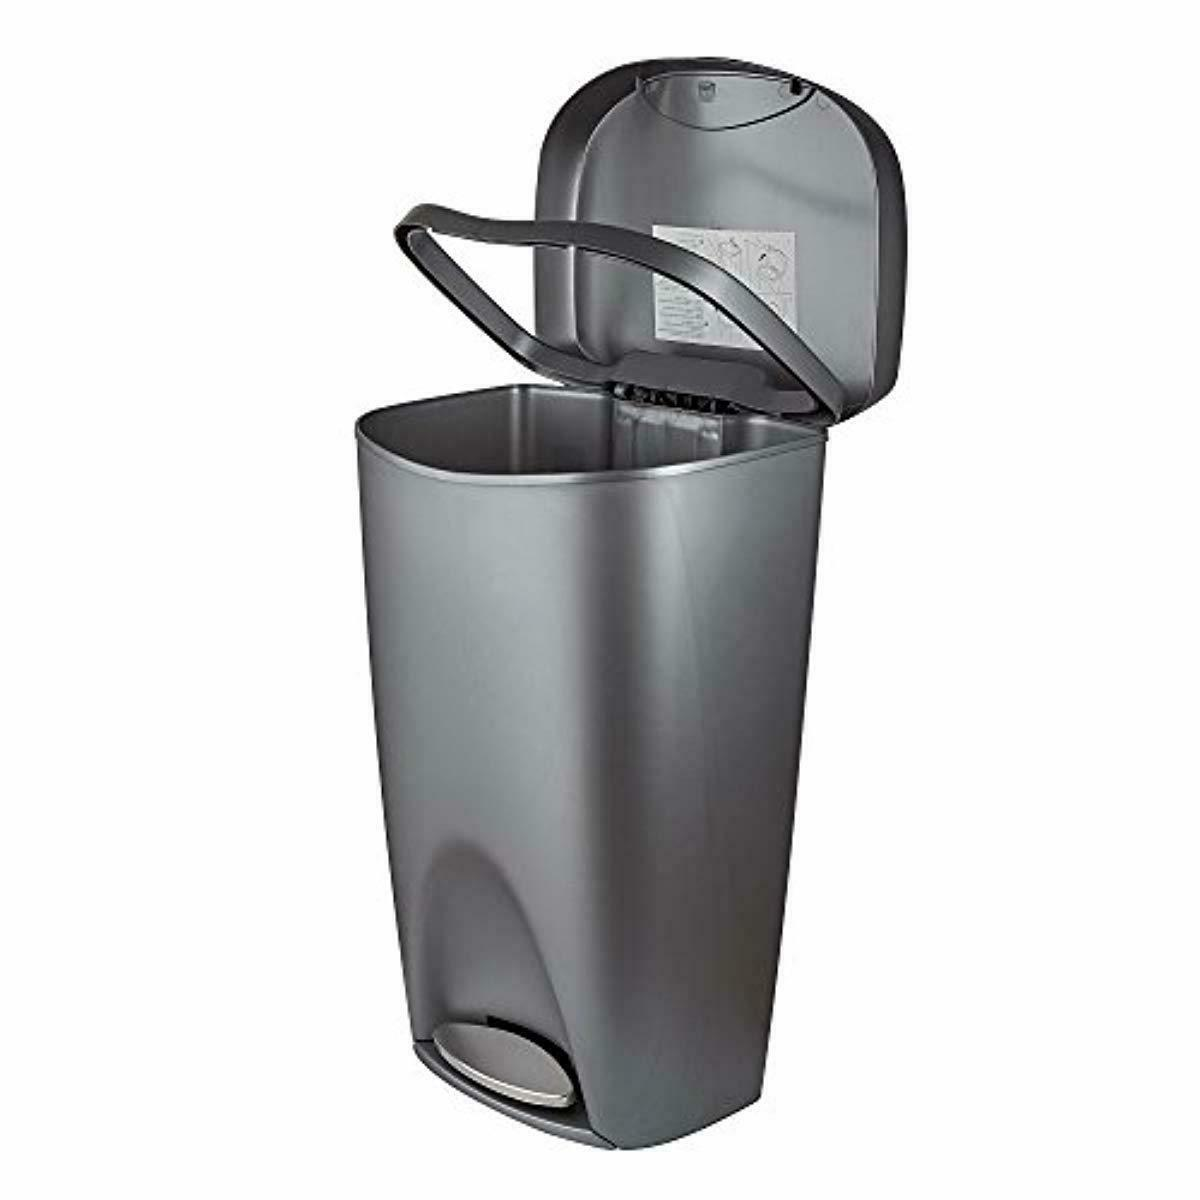 Large Kitchen Garbage with Trash Can w/ Pedal Lid